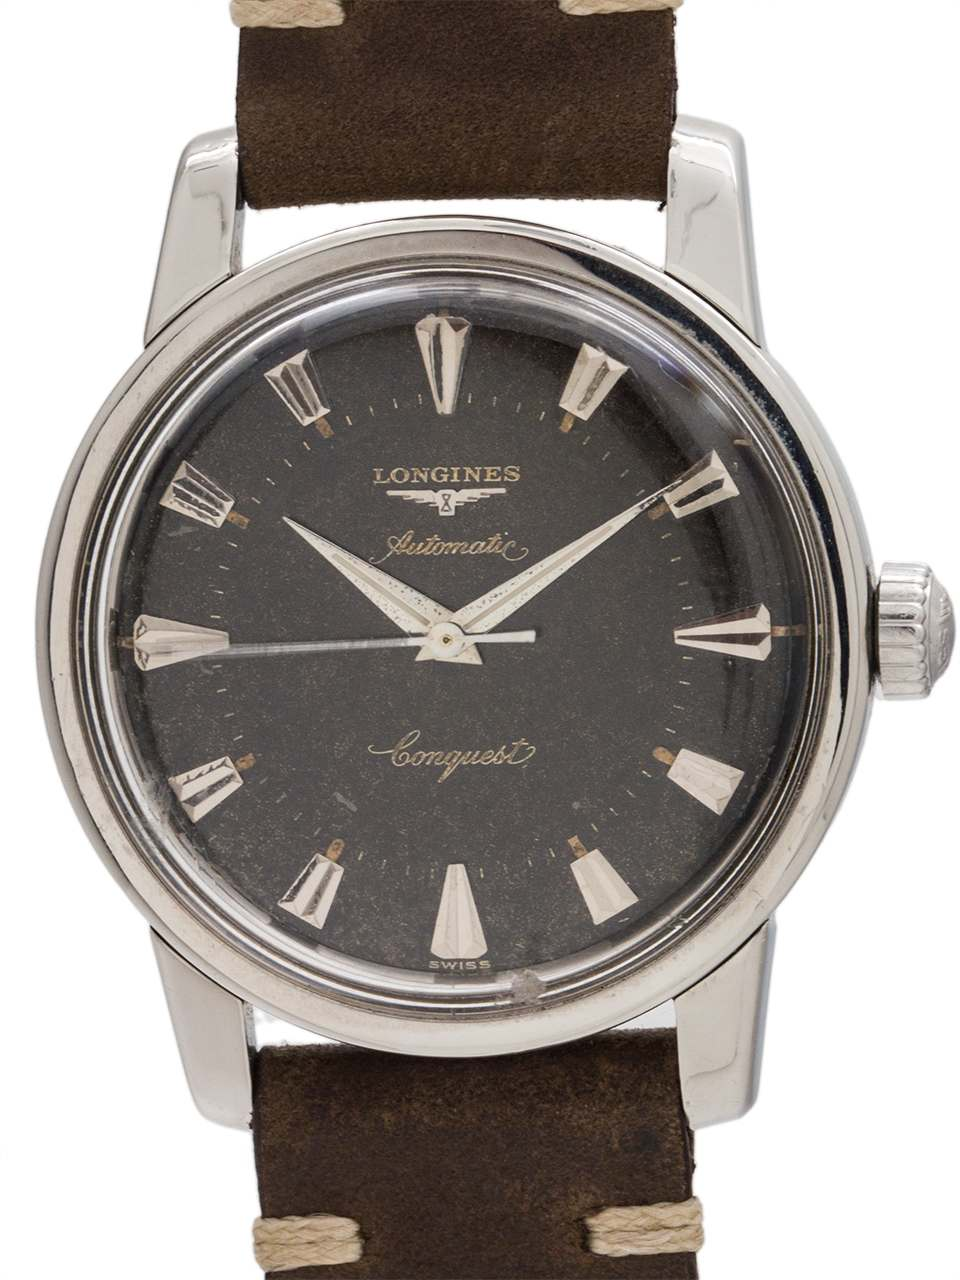 Longines Conquest Automatic Tropical Gilt Dial circa 1960